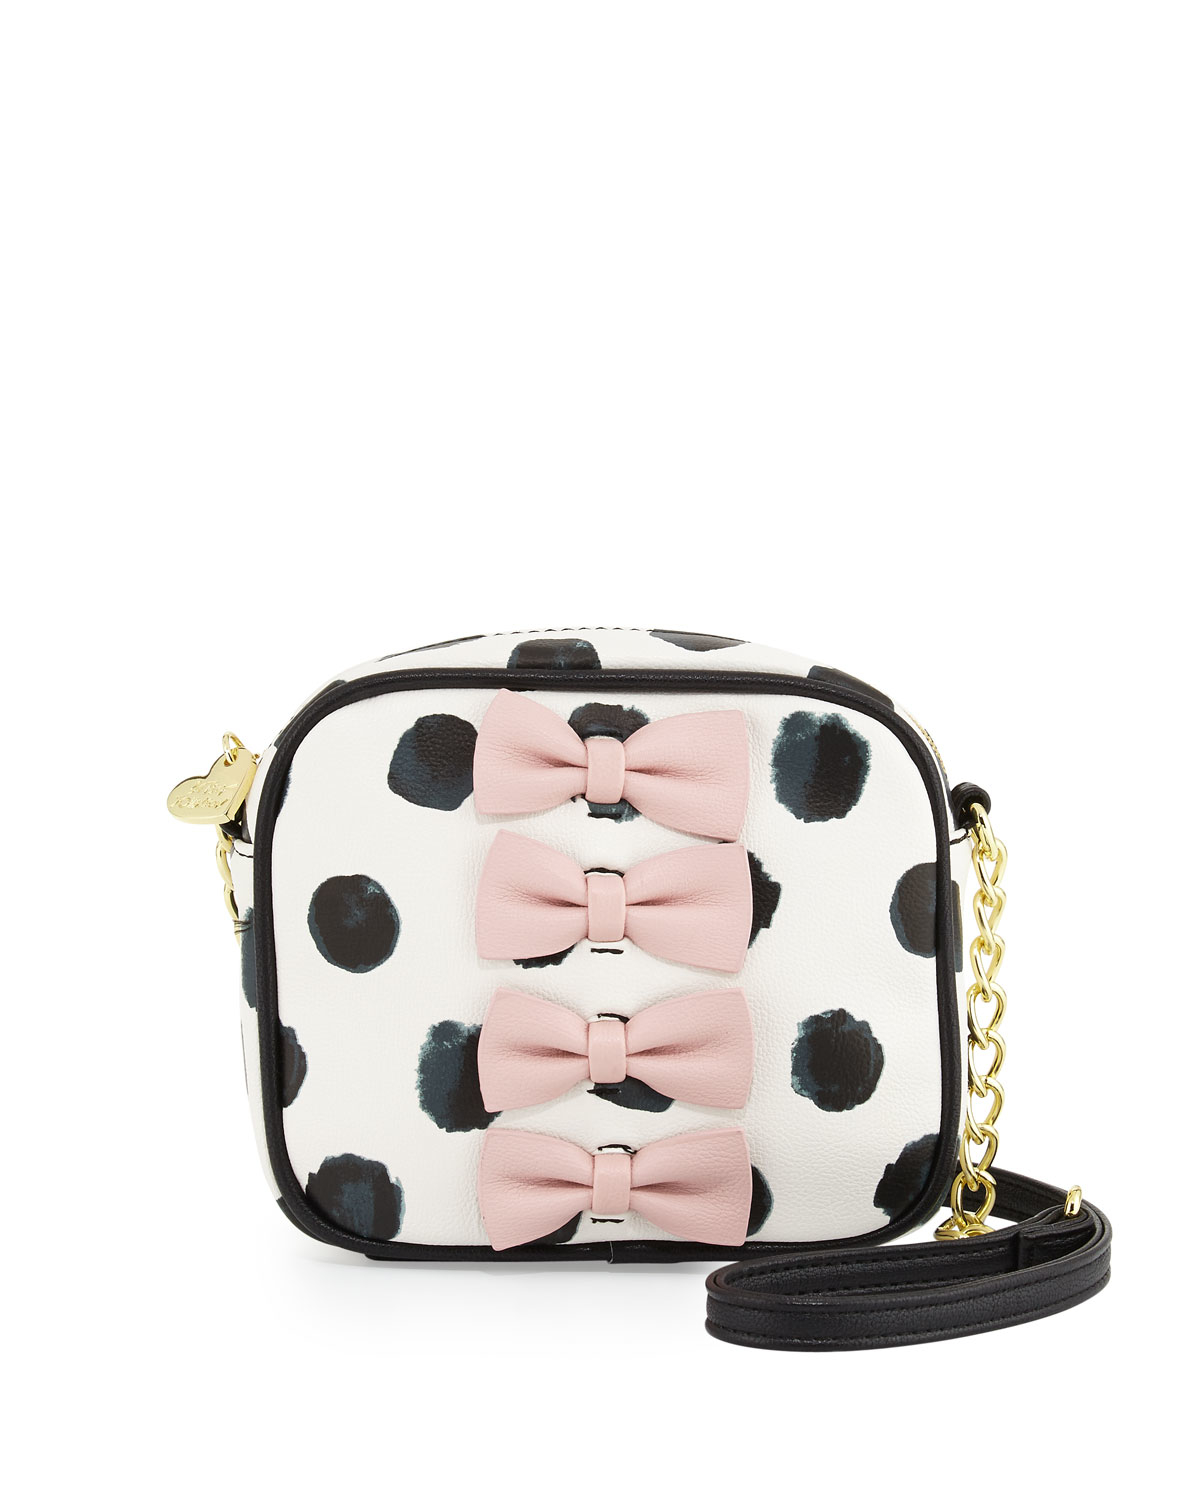 747176556d Lyst - Betsey Johnson Petite Chic Bow Camera Crossbody Bag in Black